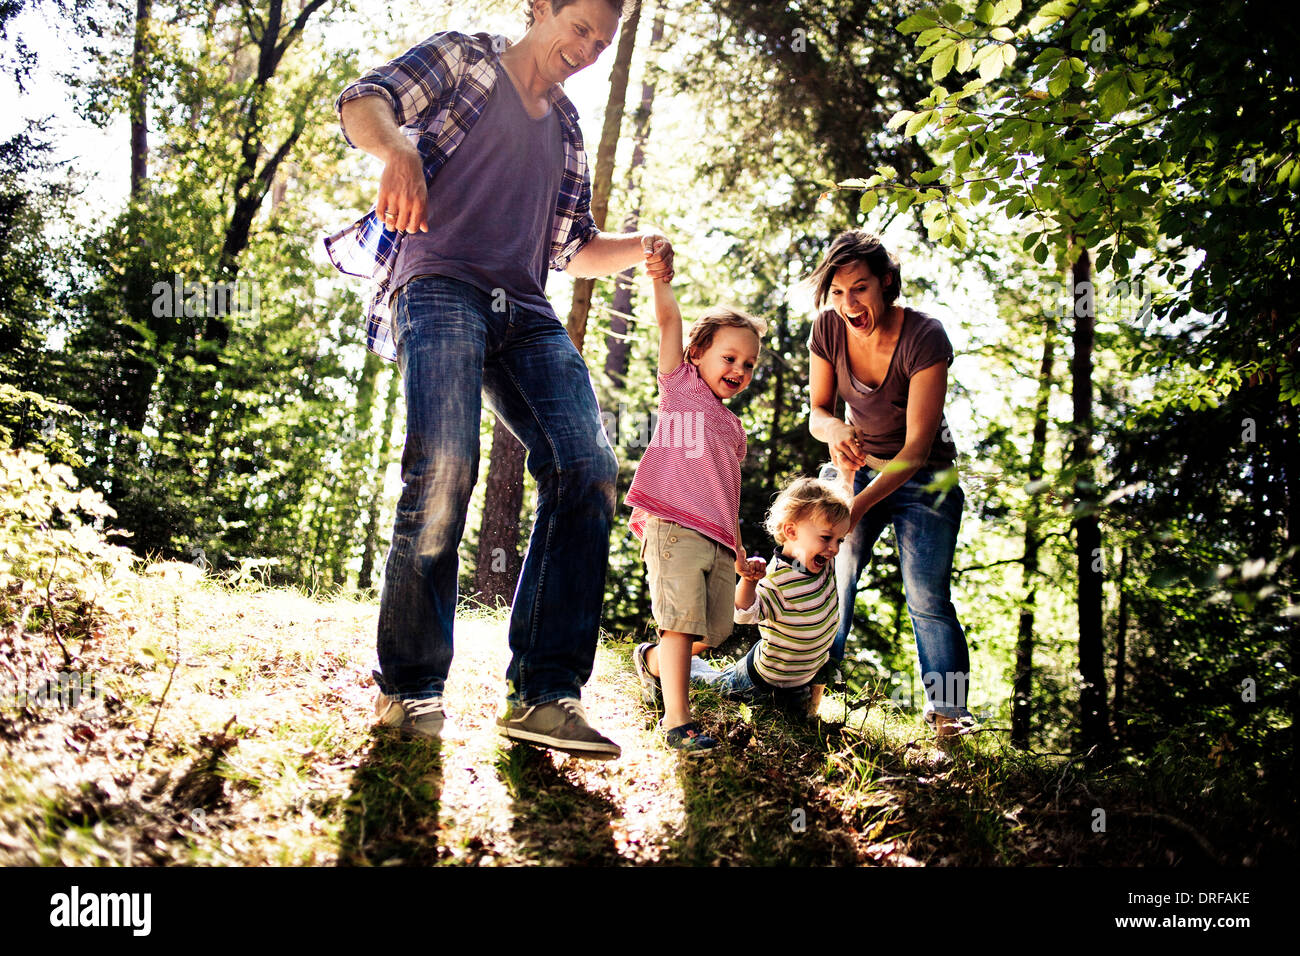 Family and two children playing in forest having fun bavaria germany